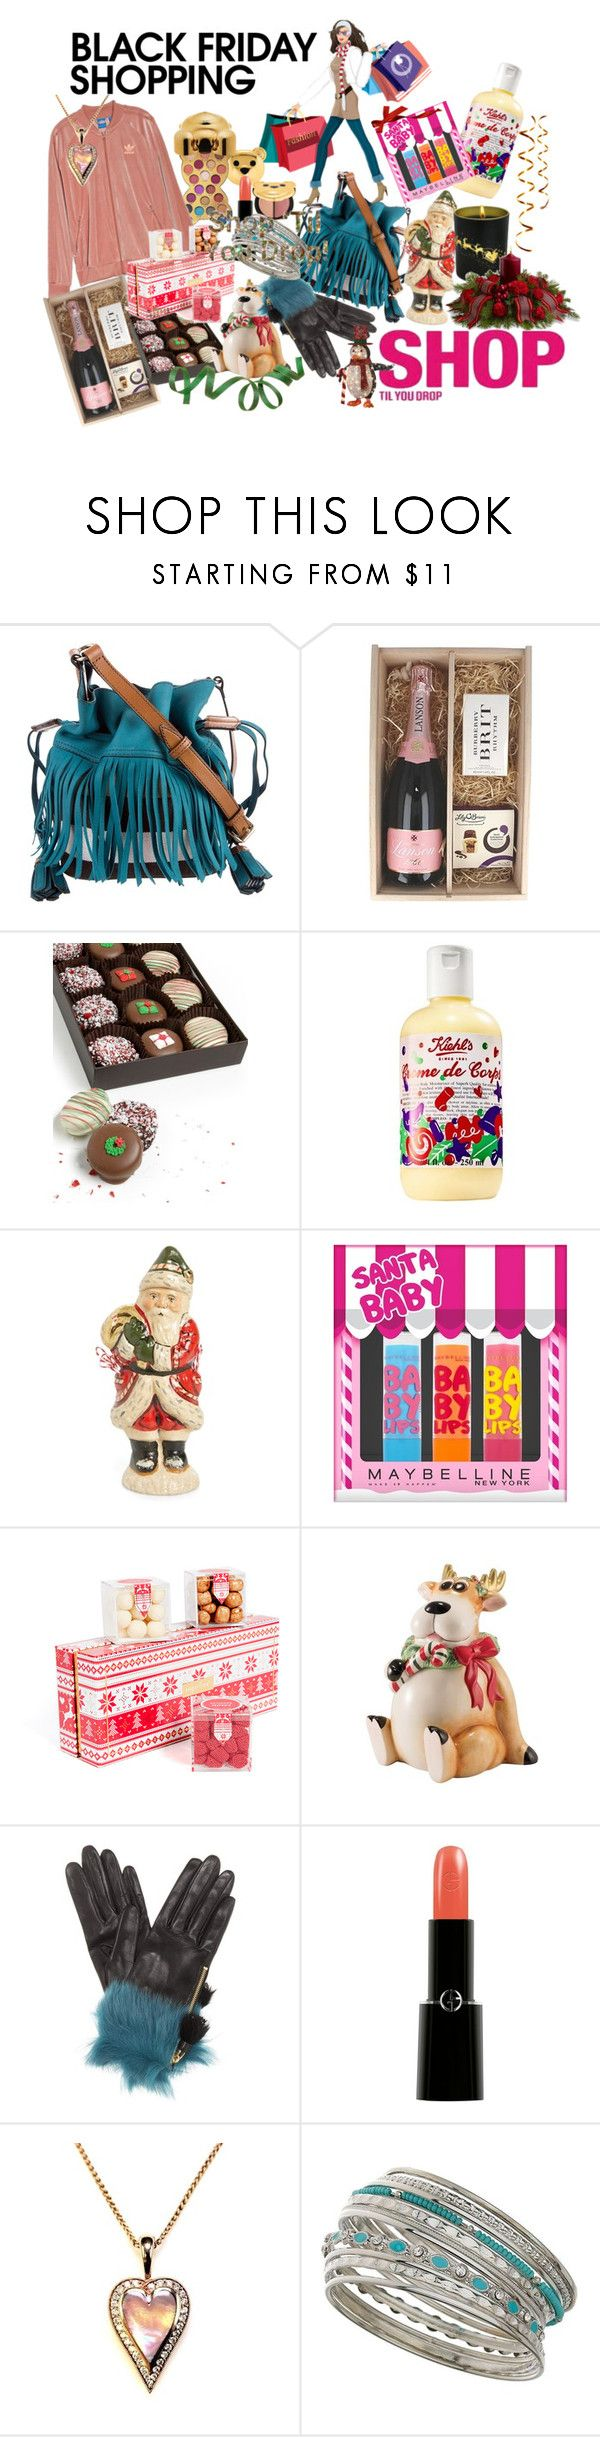 """""""Shop til you Drop - Black Friday Shopping"""" by susan-993 ❤ liked on Polyvore featuring Burberry, Piper-Heidsieck, Chocolate Covered Company, Vaillancourt Folk Art, Maybelline, sugarfina, Fitz & Floyd, Prada, Giorgio Armani and Miss Selfridge"""